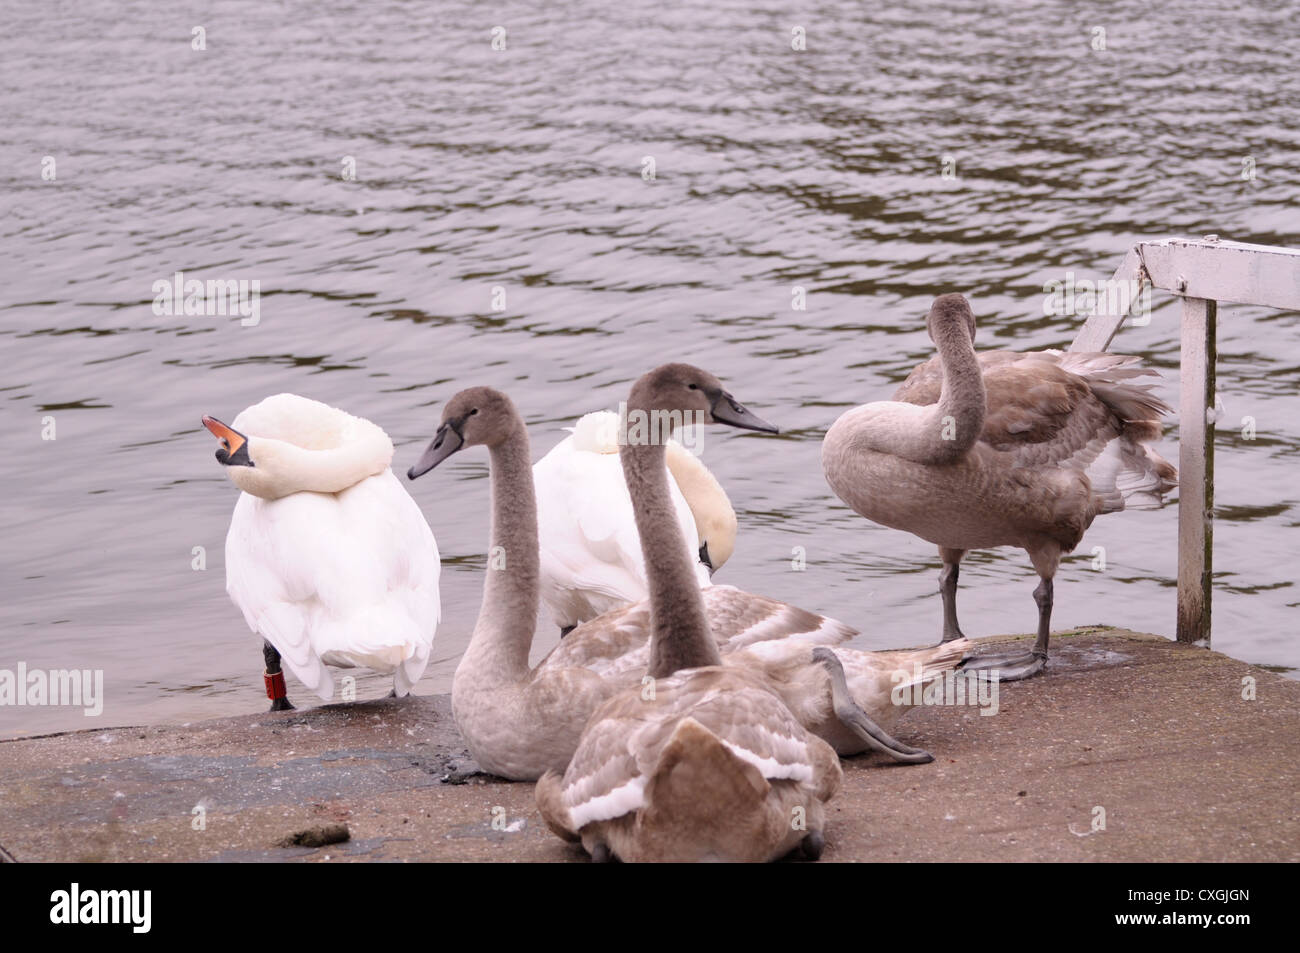 The Swans 3 - Stock Image